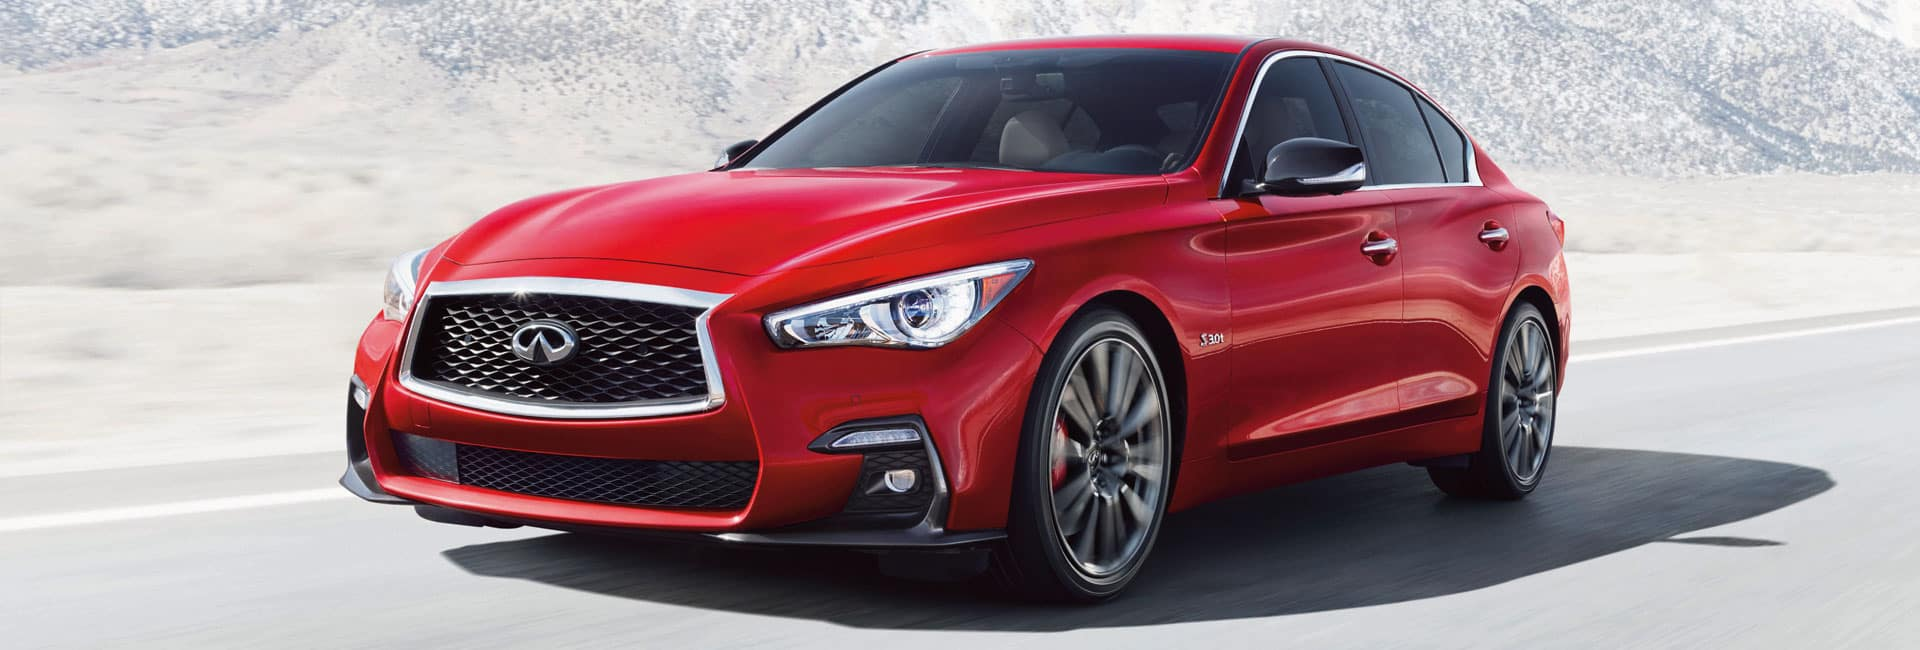 2019 INFINITI Q50 for Sale in Merrillville, IN